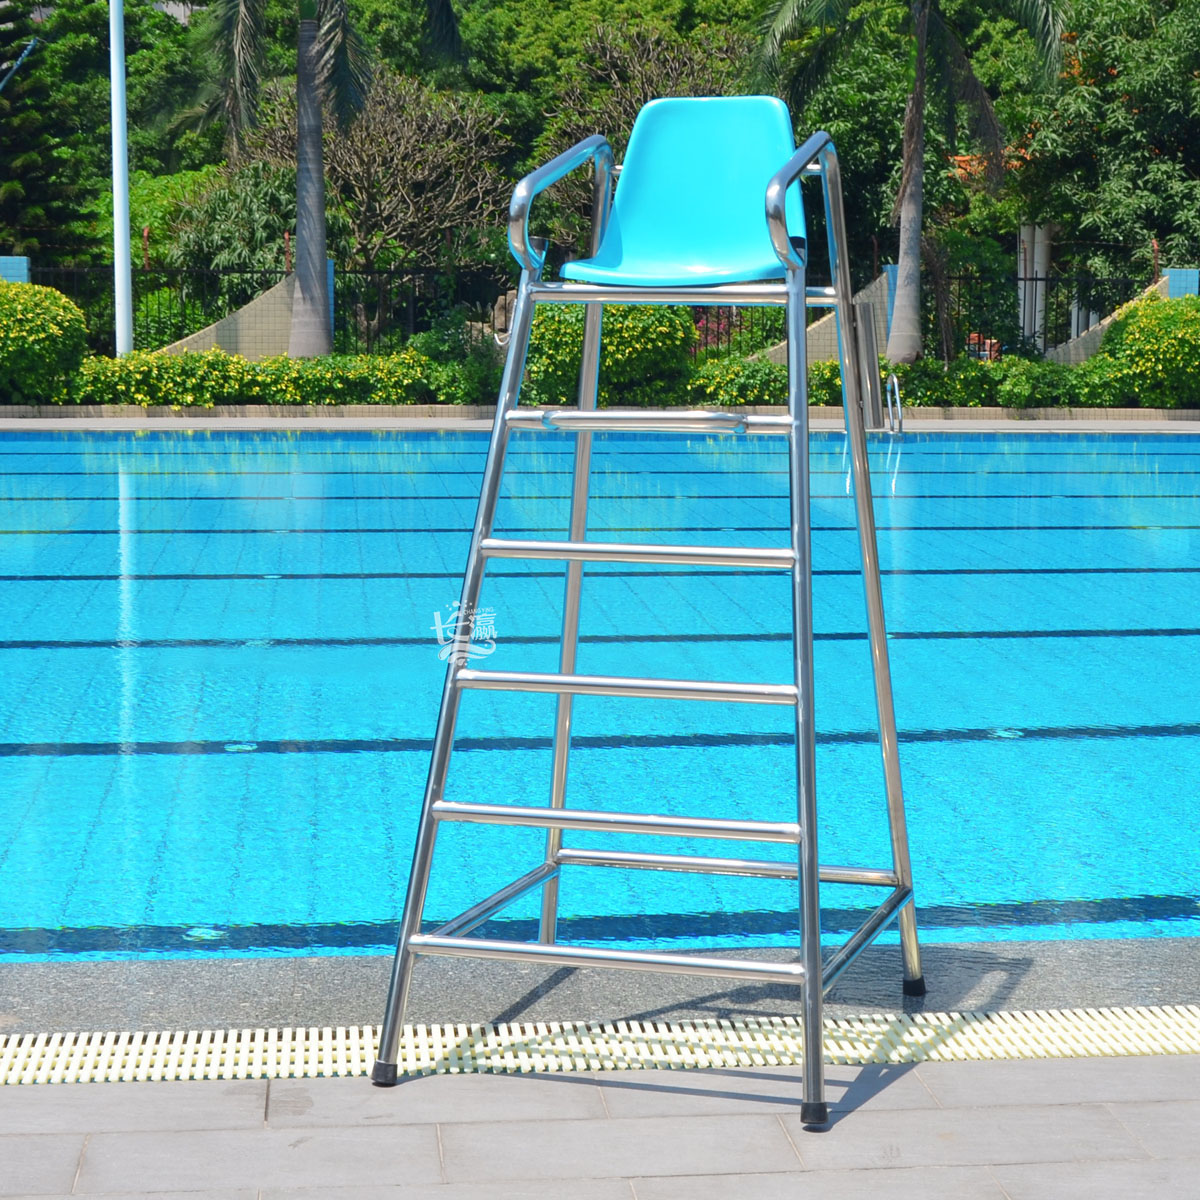 Pool Deck Chairs China Pool Deck Chair China Pool Deck Chair Shopping Guide At